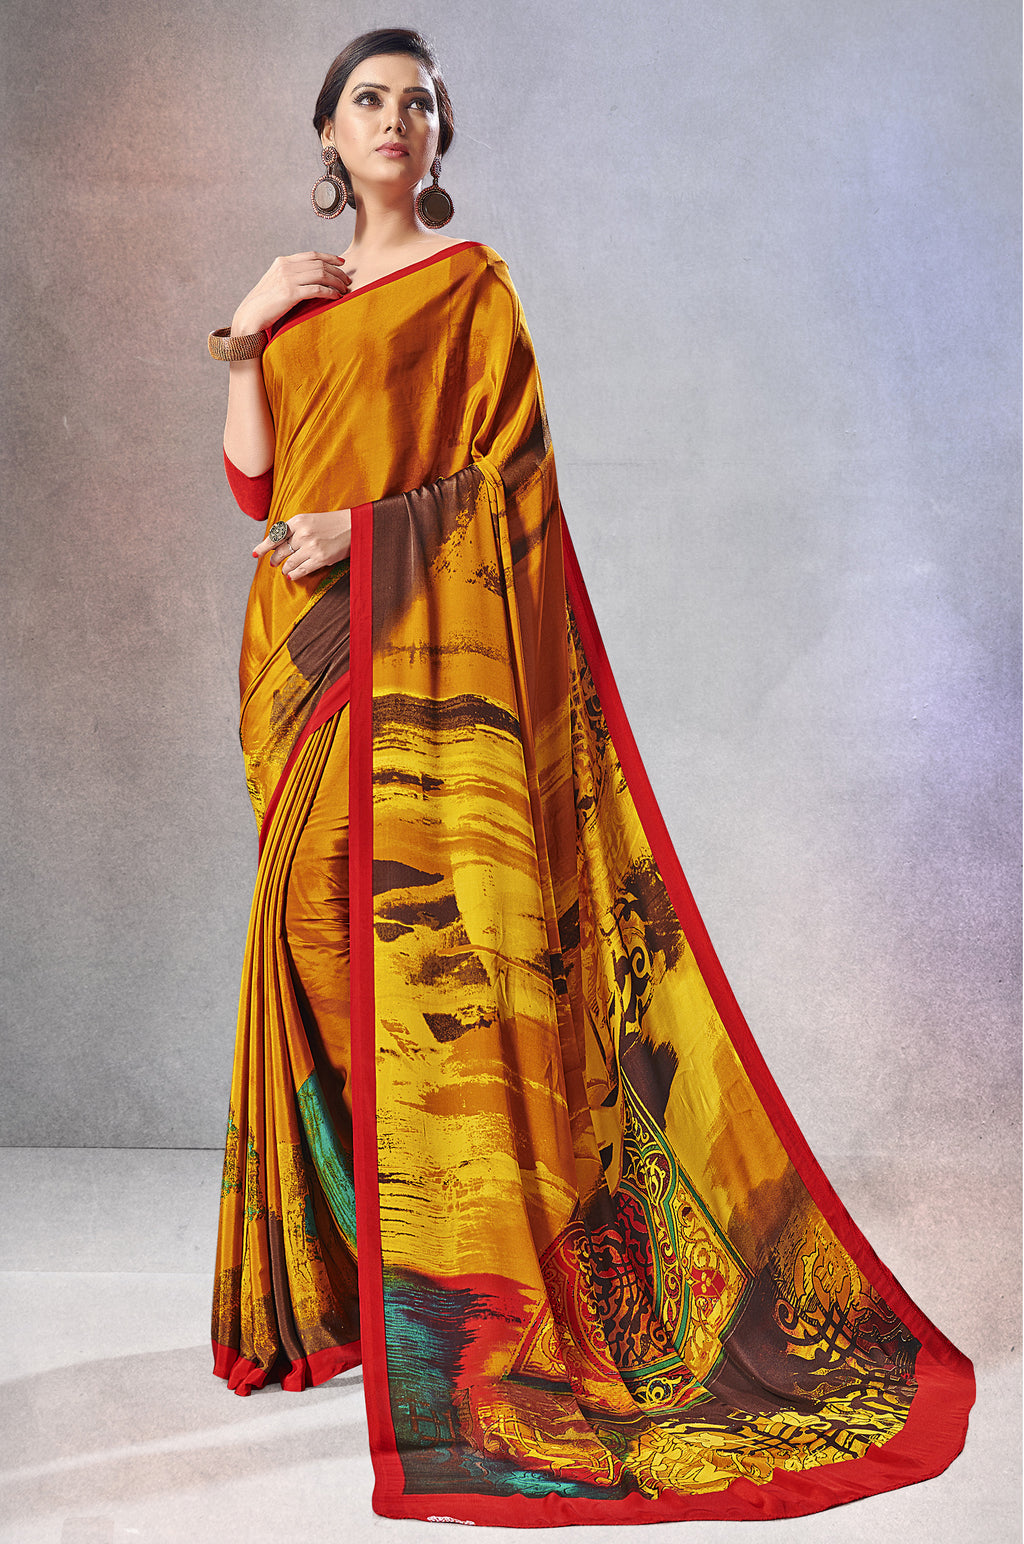 Mustard Yellow Color Crepe  Digital Print Kitty Party Sarees NYF-8150